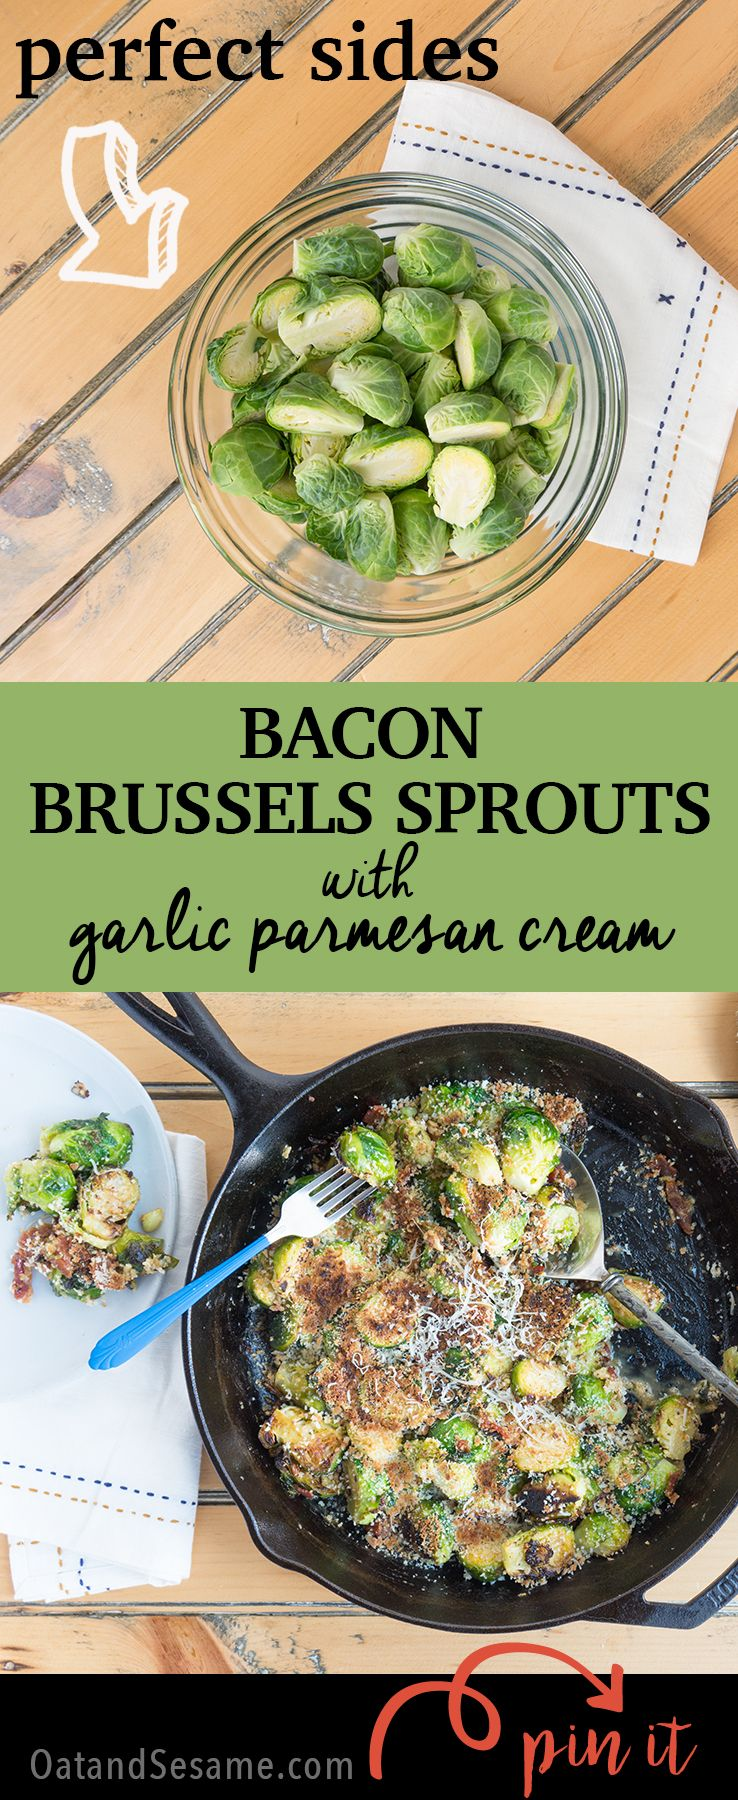 Bacon Brussels Sprouts with Garlic Parmesan Cream. A delicious side dish for Thanksgiving or any Fall gathering. Skillet roasted and done in under 30 min | #BRUSSELS | #THANKSGIVING | #SIDES | #Recipes at OatandSesame.com